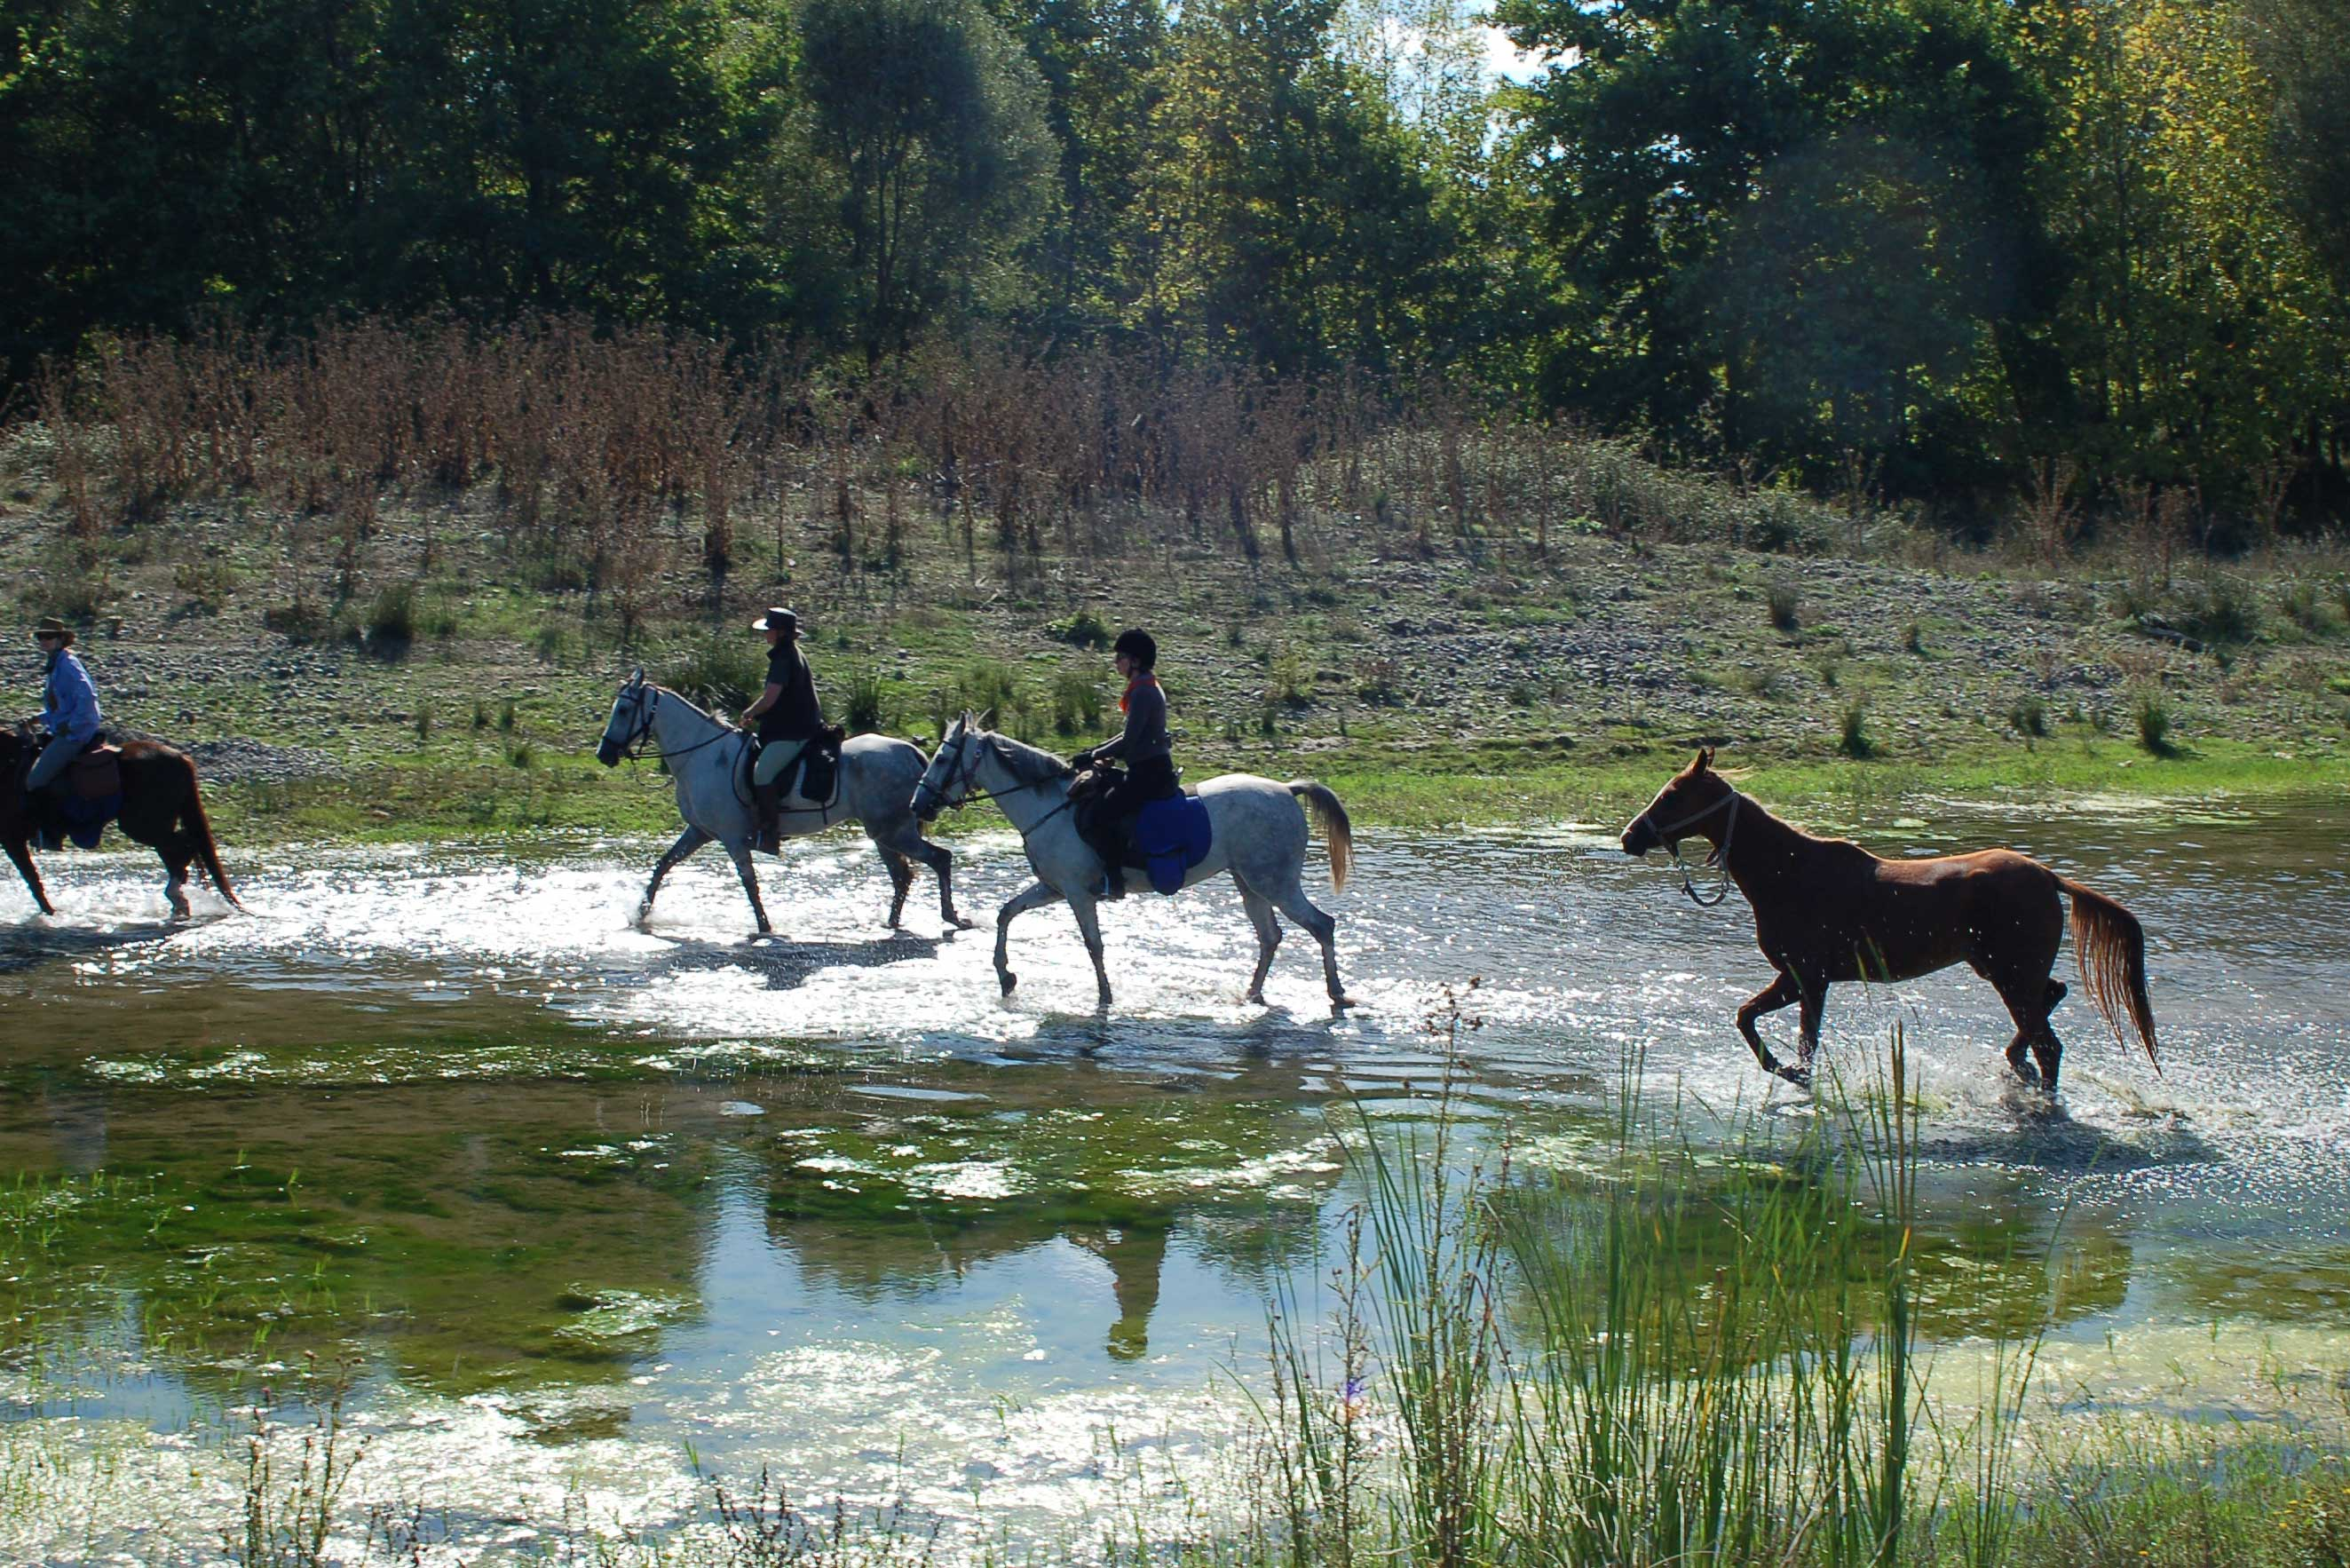 People riding horses through a stream